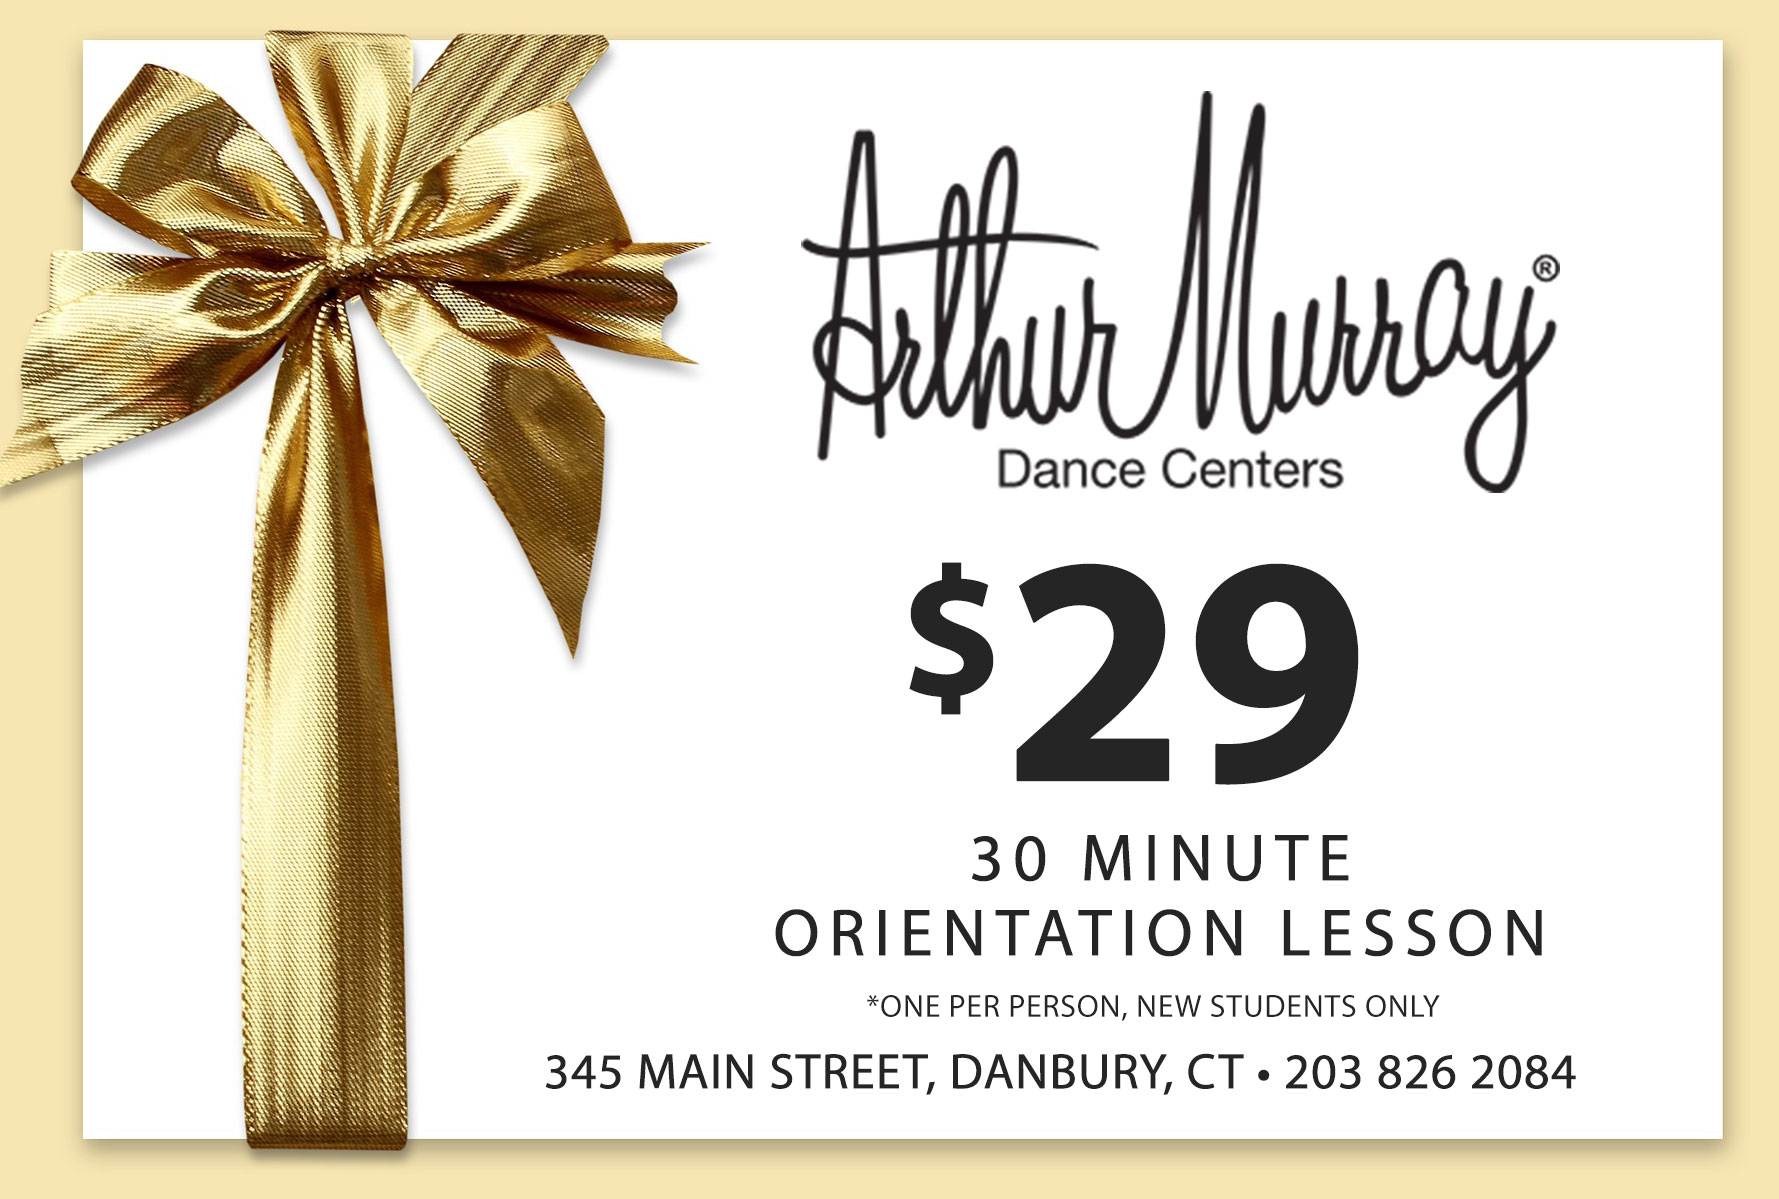 $29 30 minute orientation lesson